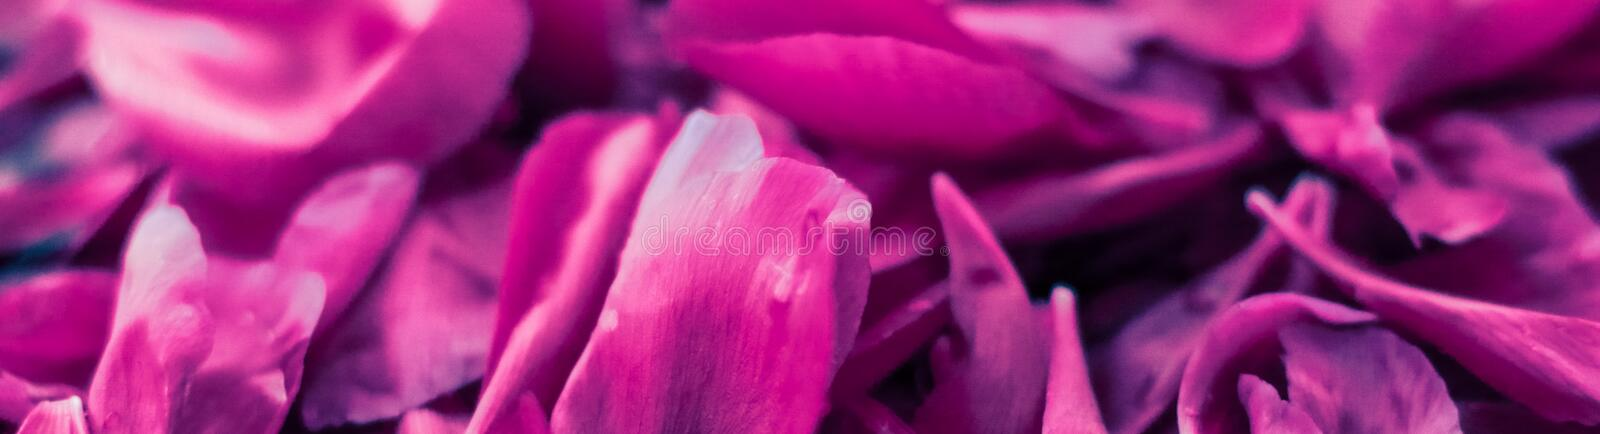 Abstract floral background, purple flower petals in water. Beauty of nature, dream garden and wedding backdrop concept - Abstract floral background, purple stock photography